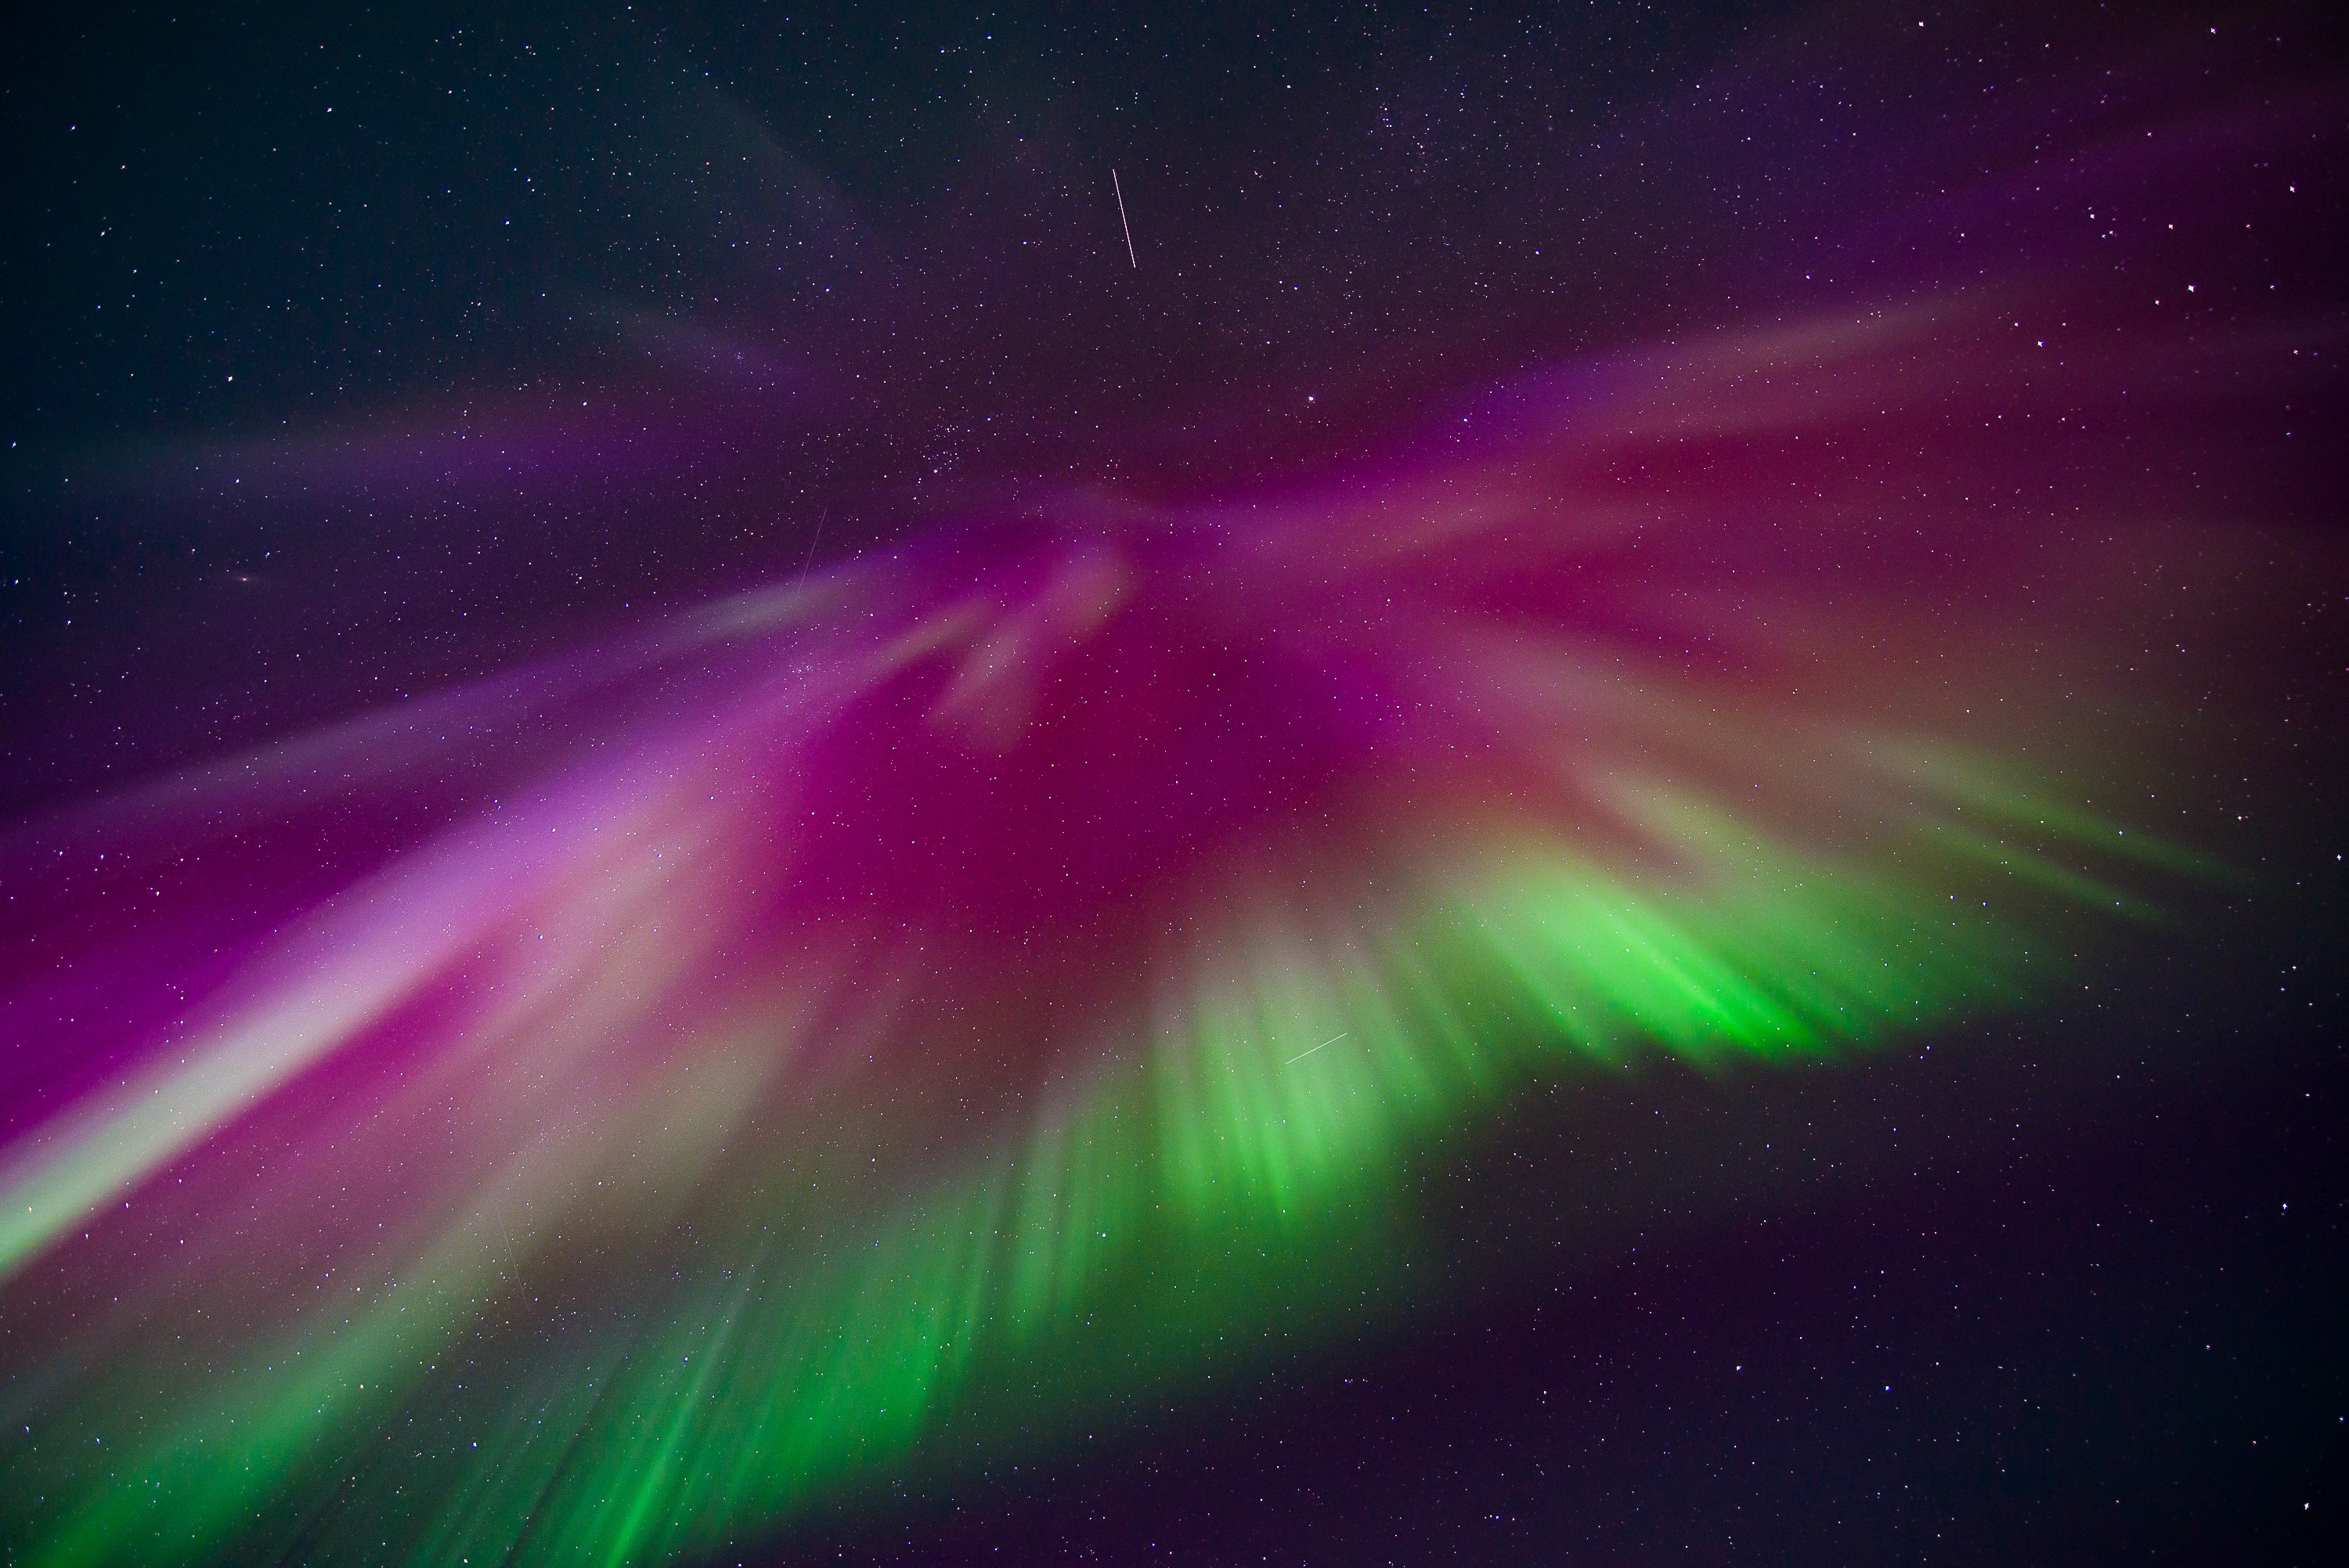 Bright purple and green rays of light spray out from above in a starry sky.